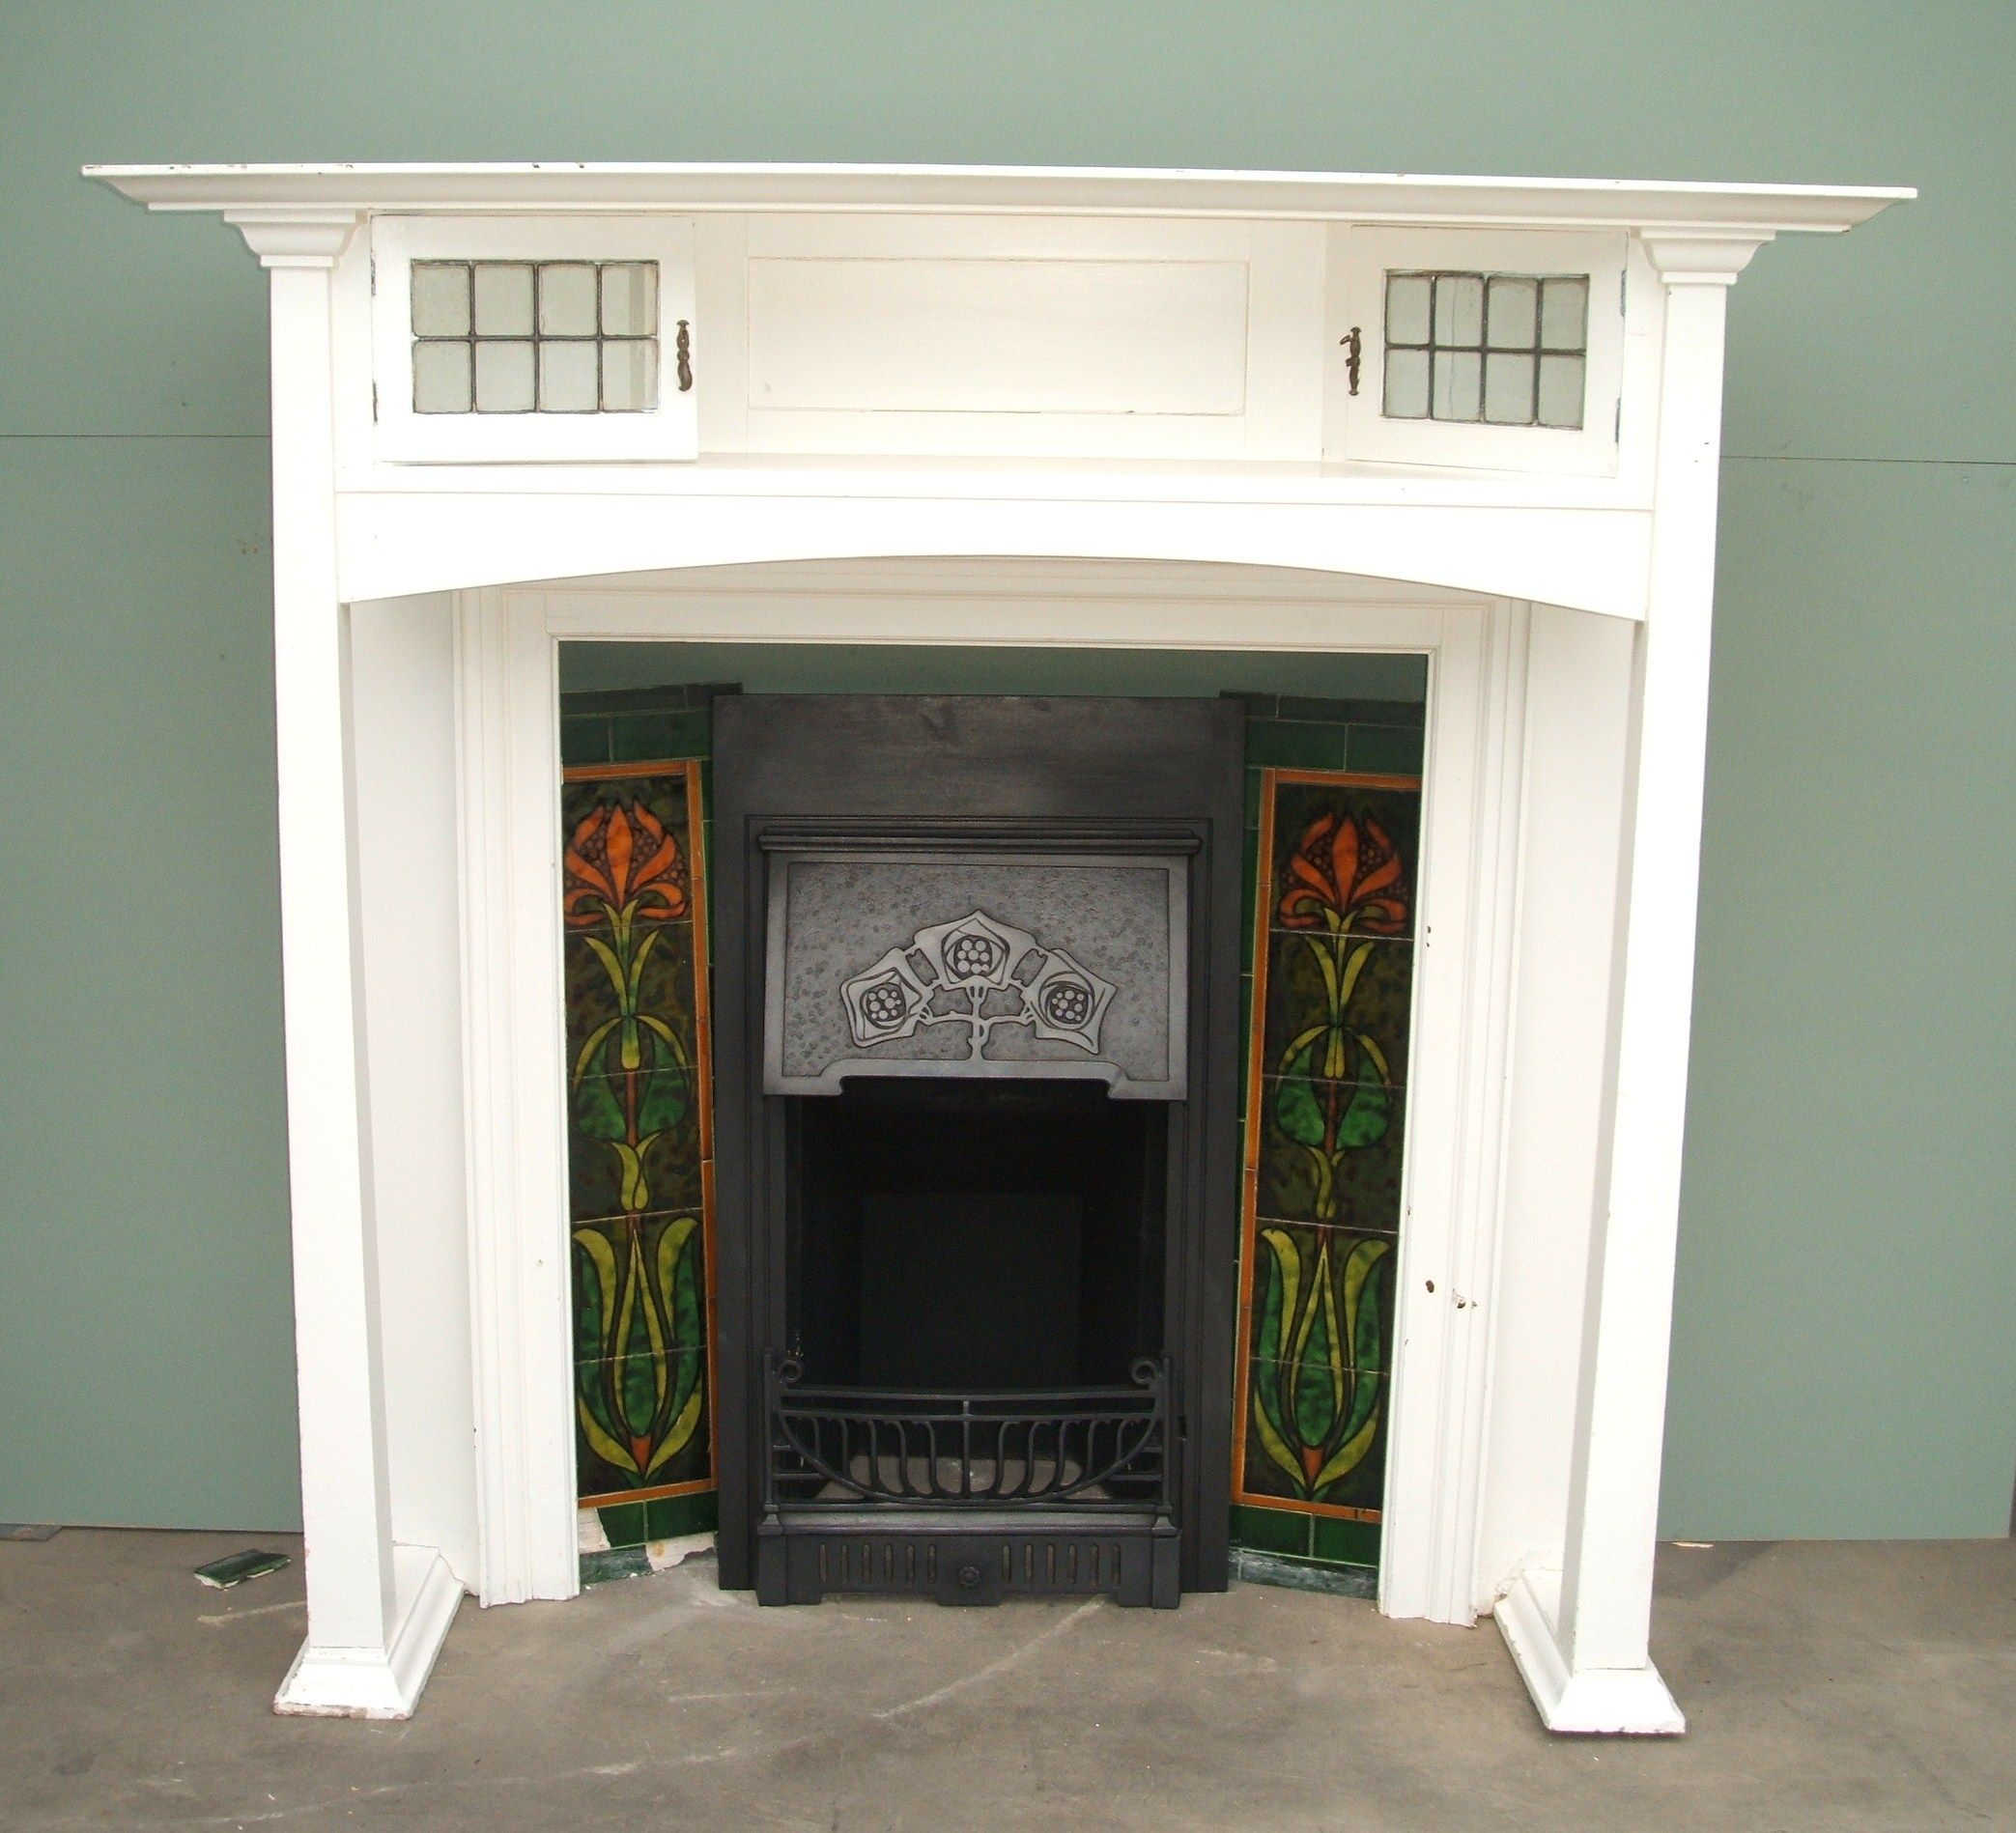 Charles Graham Architectural Antiques and Fireplaces - Original Antique Arts and Crafts wooden fire surround - ref WS04